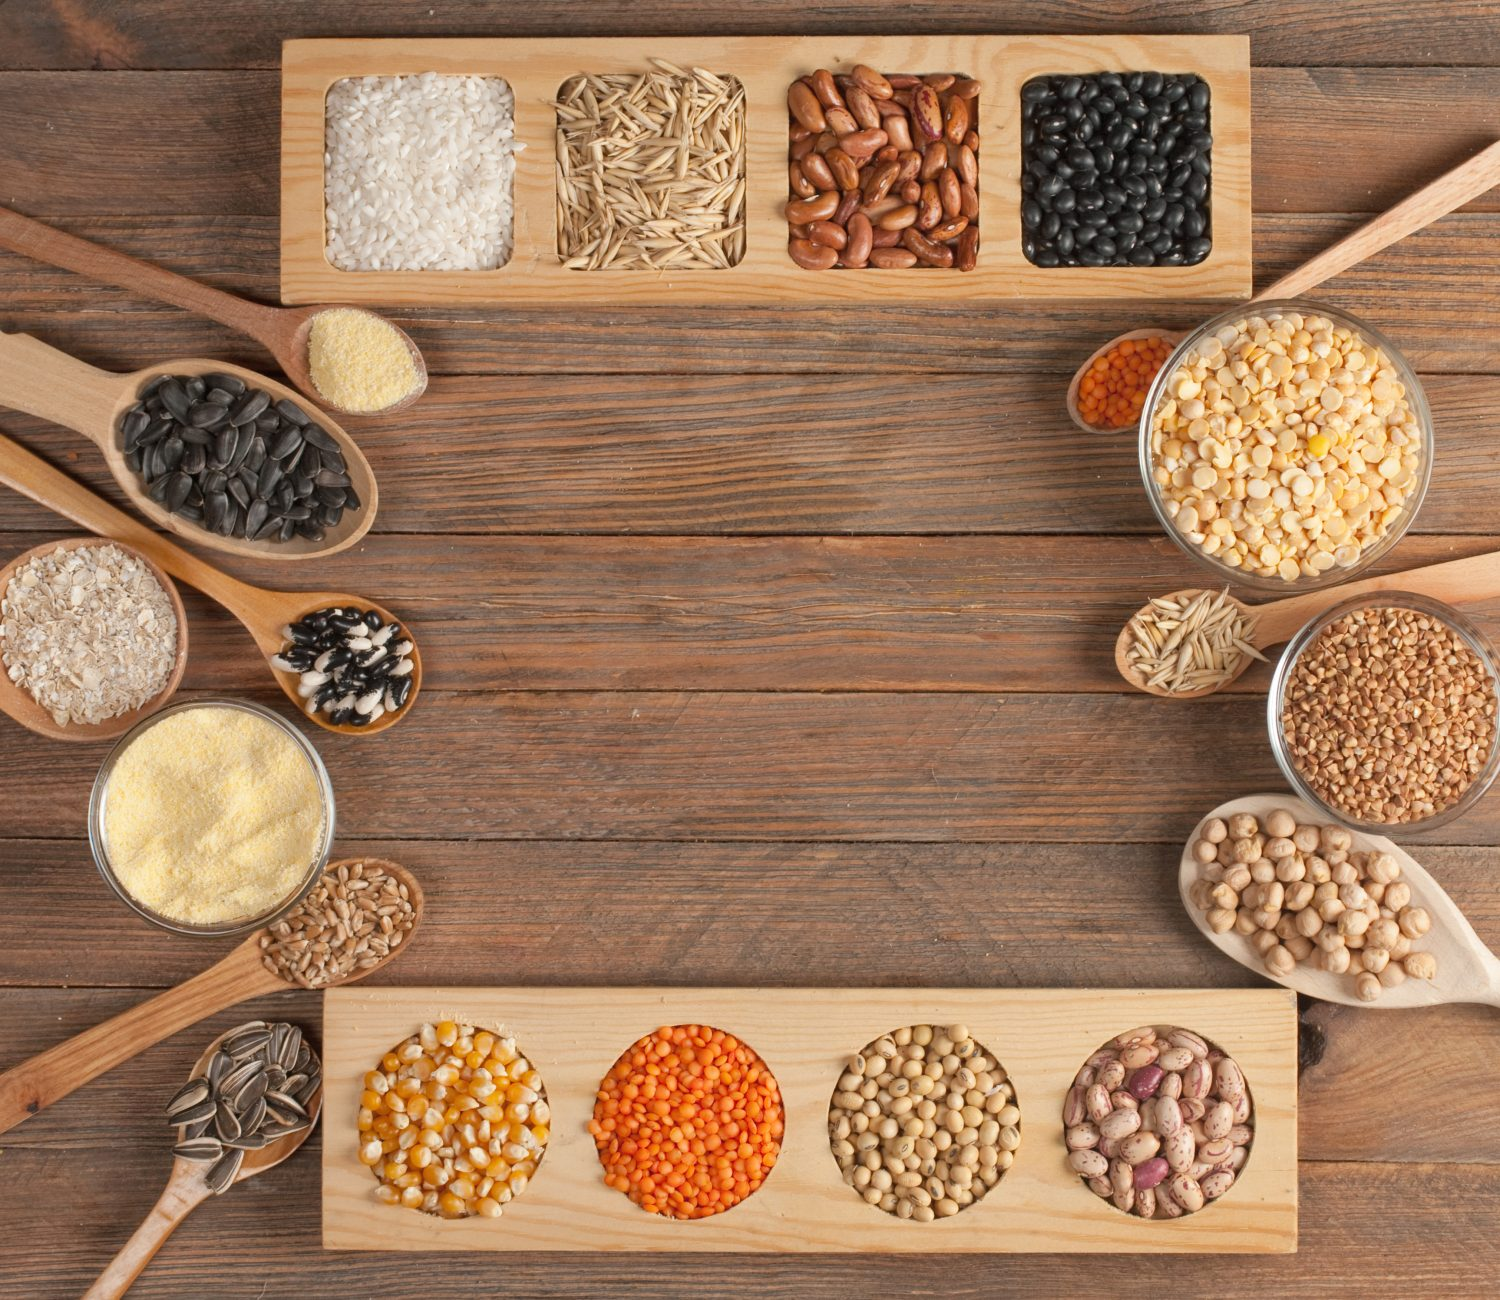 Food Storage Grains: An inexpensive calorie with lots of versatility